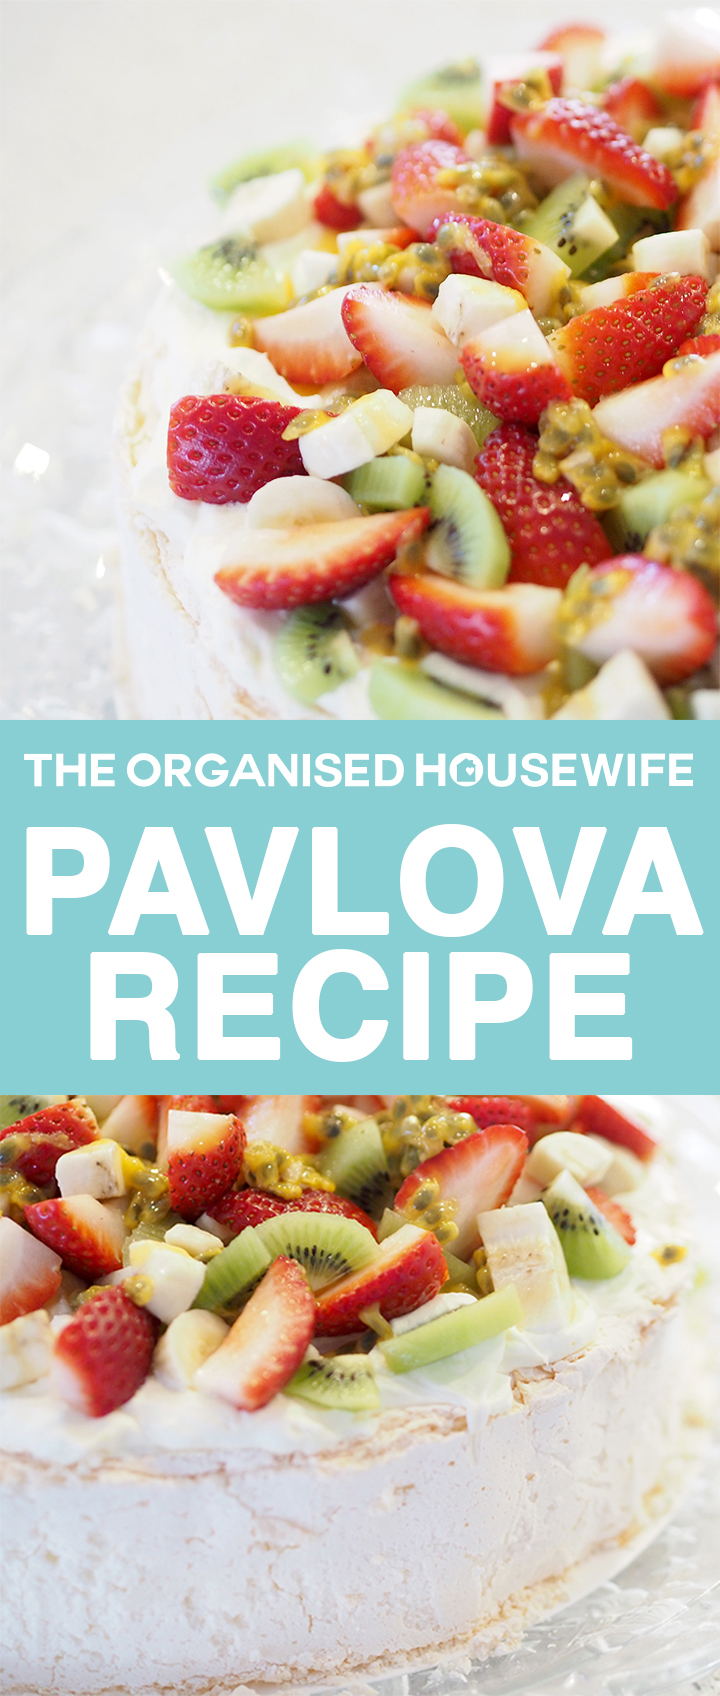 Pavlova is a light meringue dessert topped with whipped cream and fresh fruits. It's always a crowd pleaser and tastes amazing. It's crunchy on the outside but has a soft as marshmallow inside.